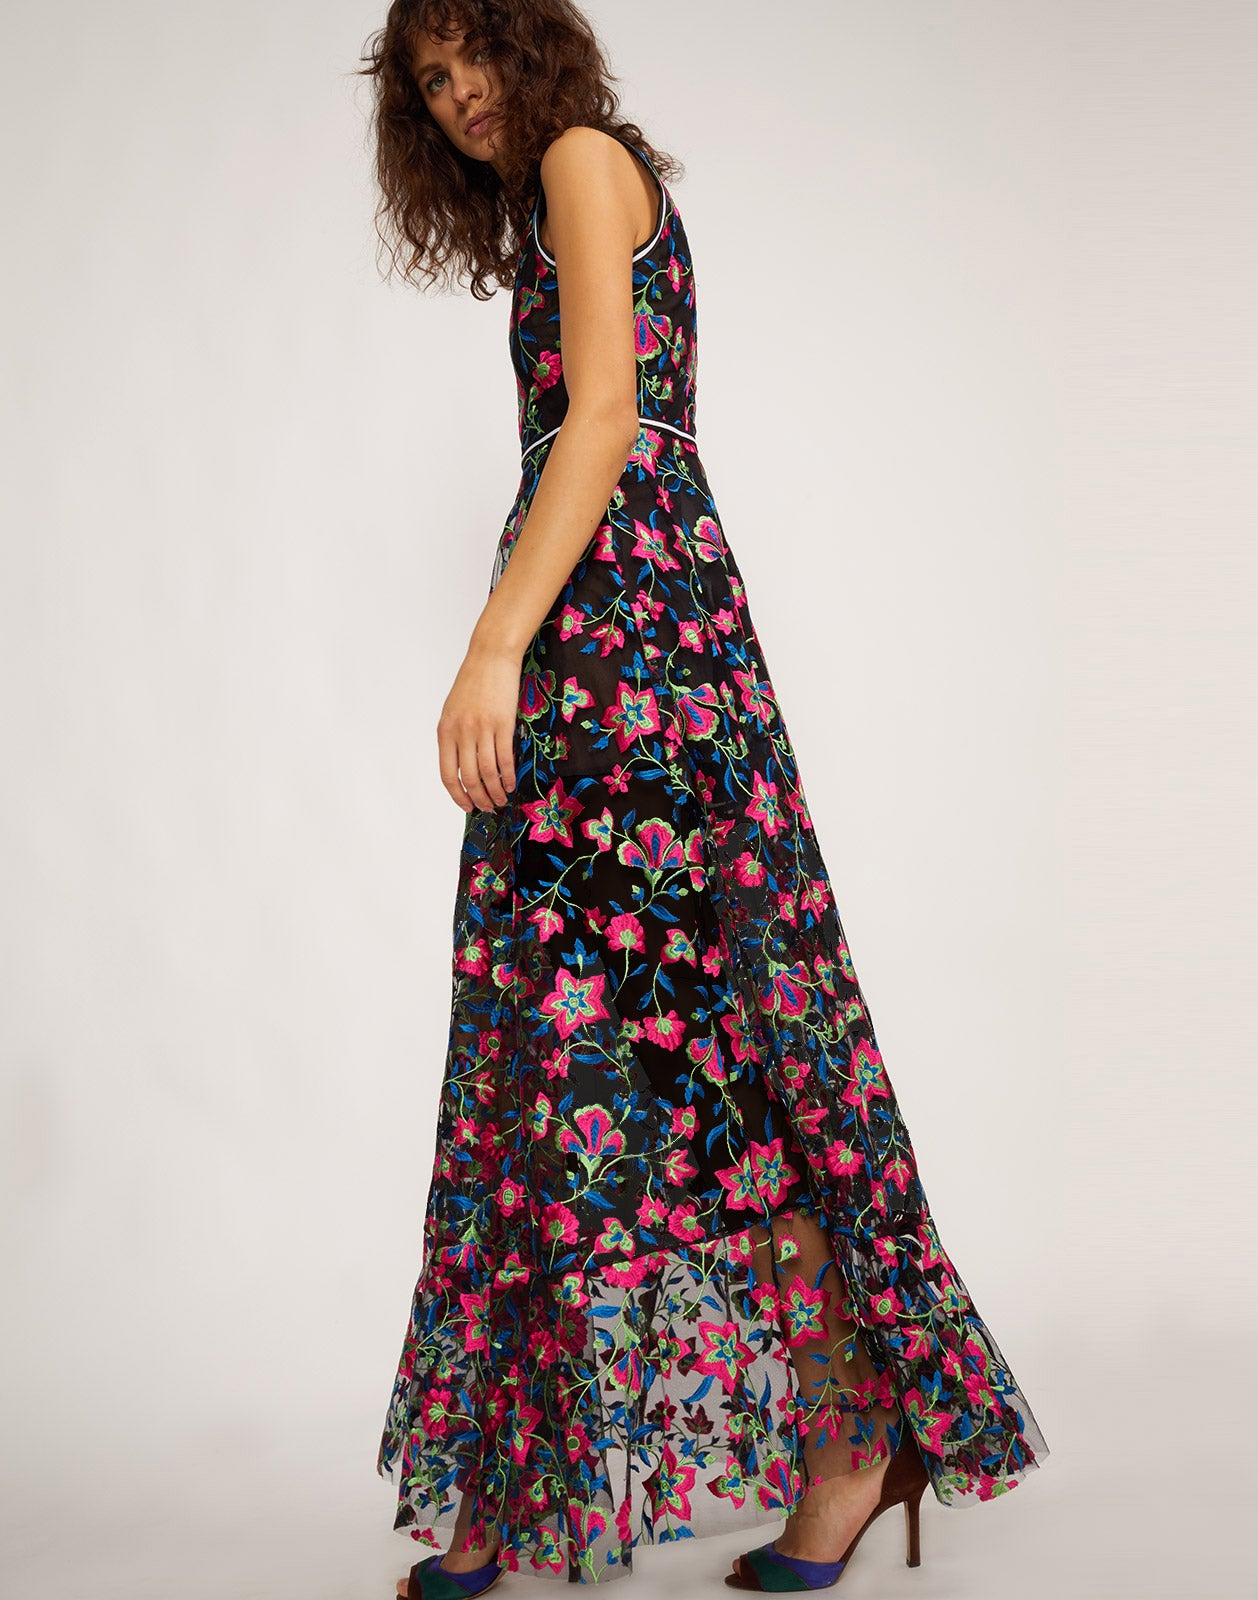 68357327ab7 Side view of the Lorelei embroidered mesh maxi dress.